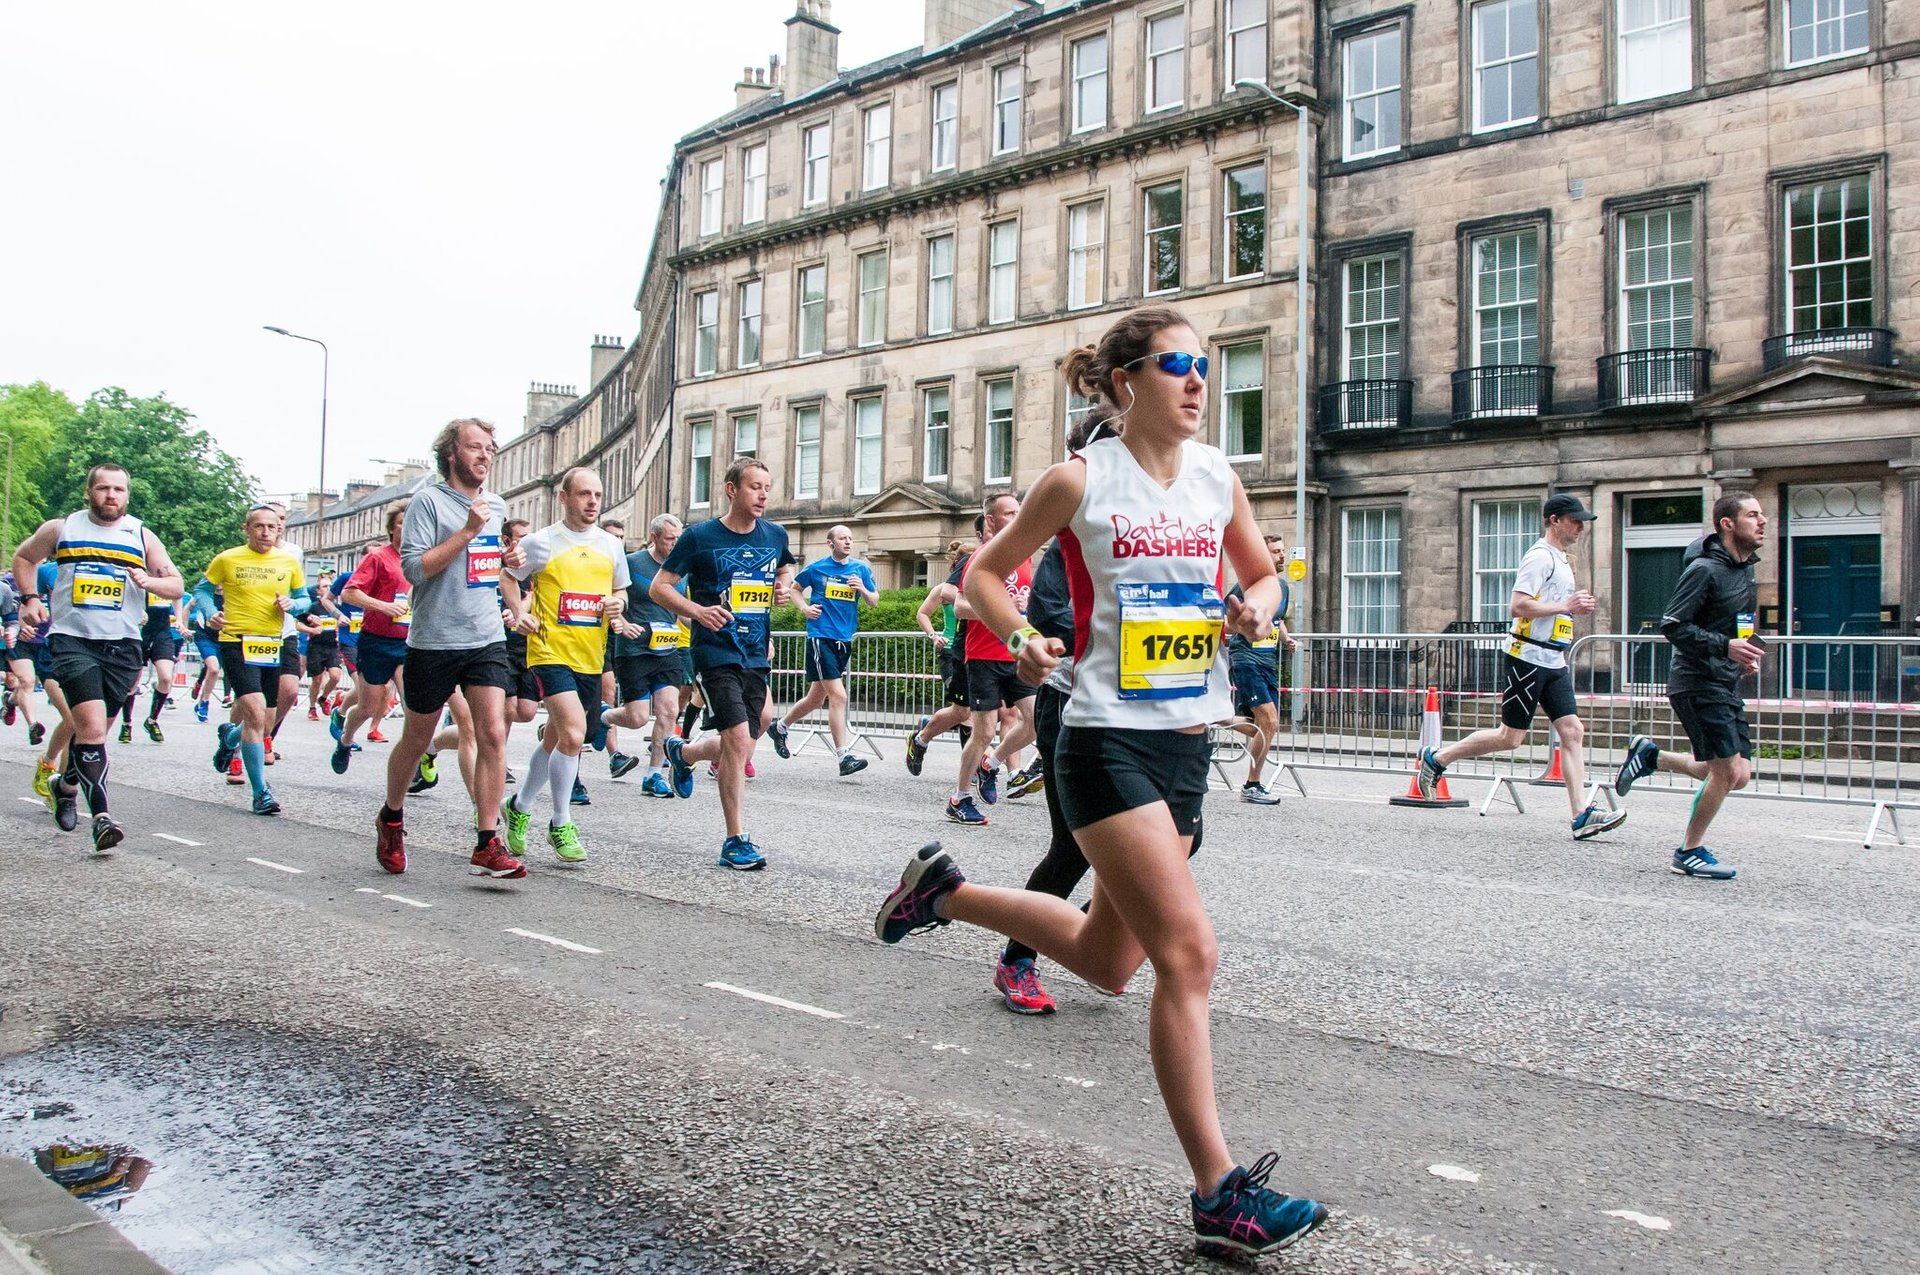 Best time to see Edinburgh Marathon in Edinburgh 2020